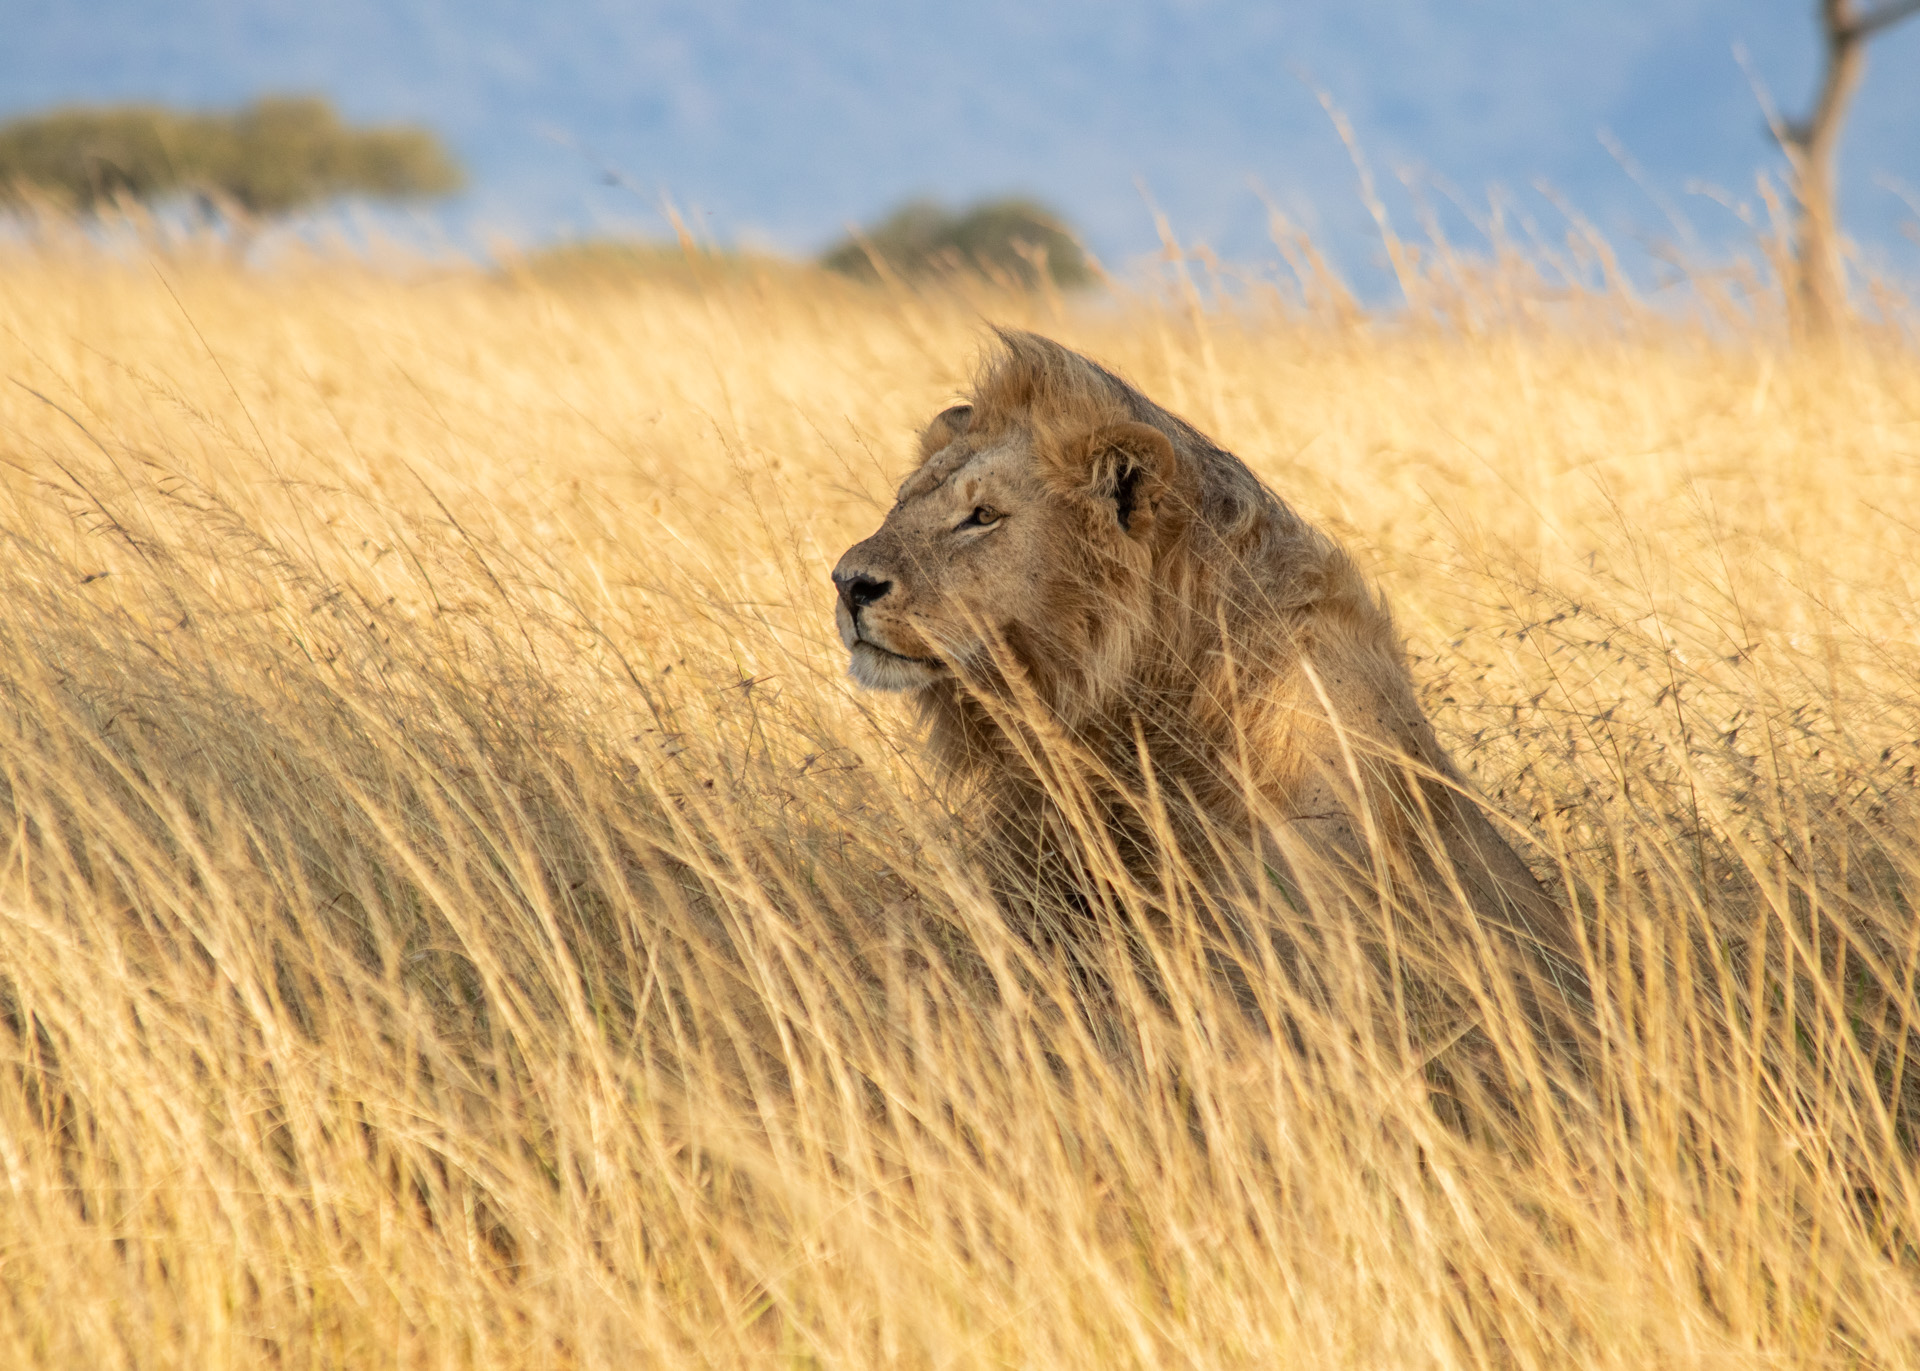 Lion in shade